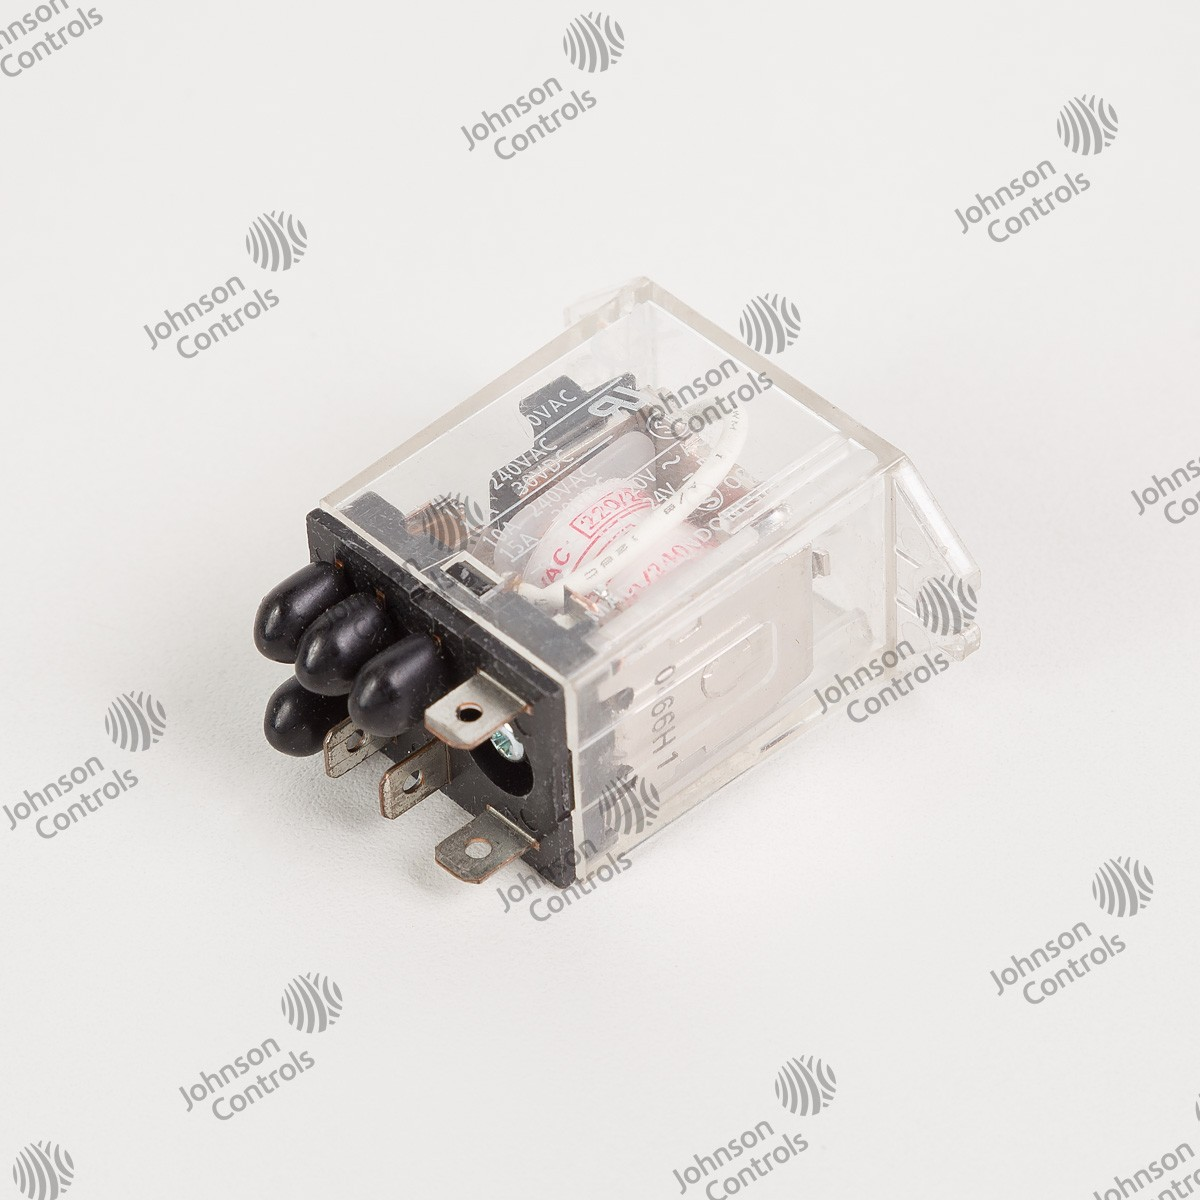 RELE OMRON 1NO 1NC (LY1F) - 024T05053-000